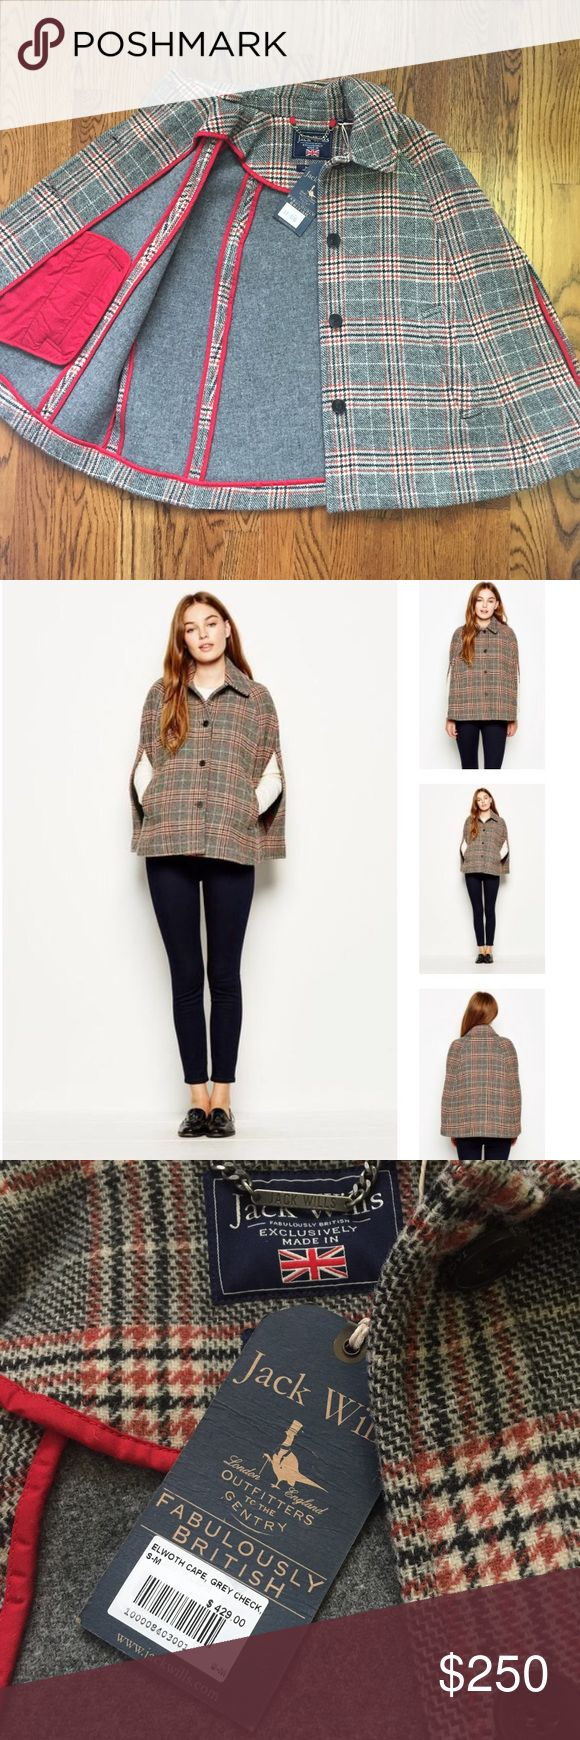 Jack Wills cape 100% wool Size S-M. 100% wool. Premium quality. Jack Wills Jackets & Coats Capes